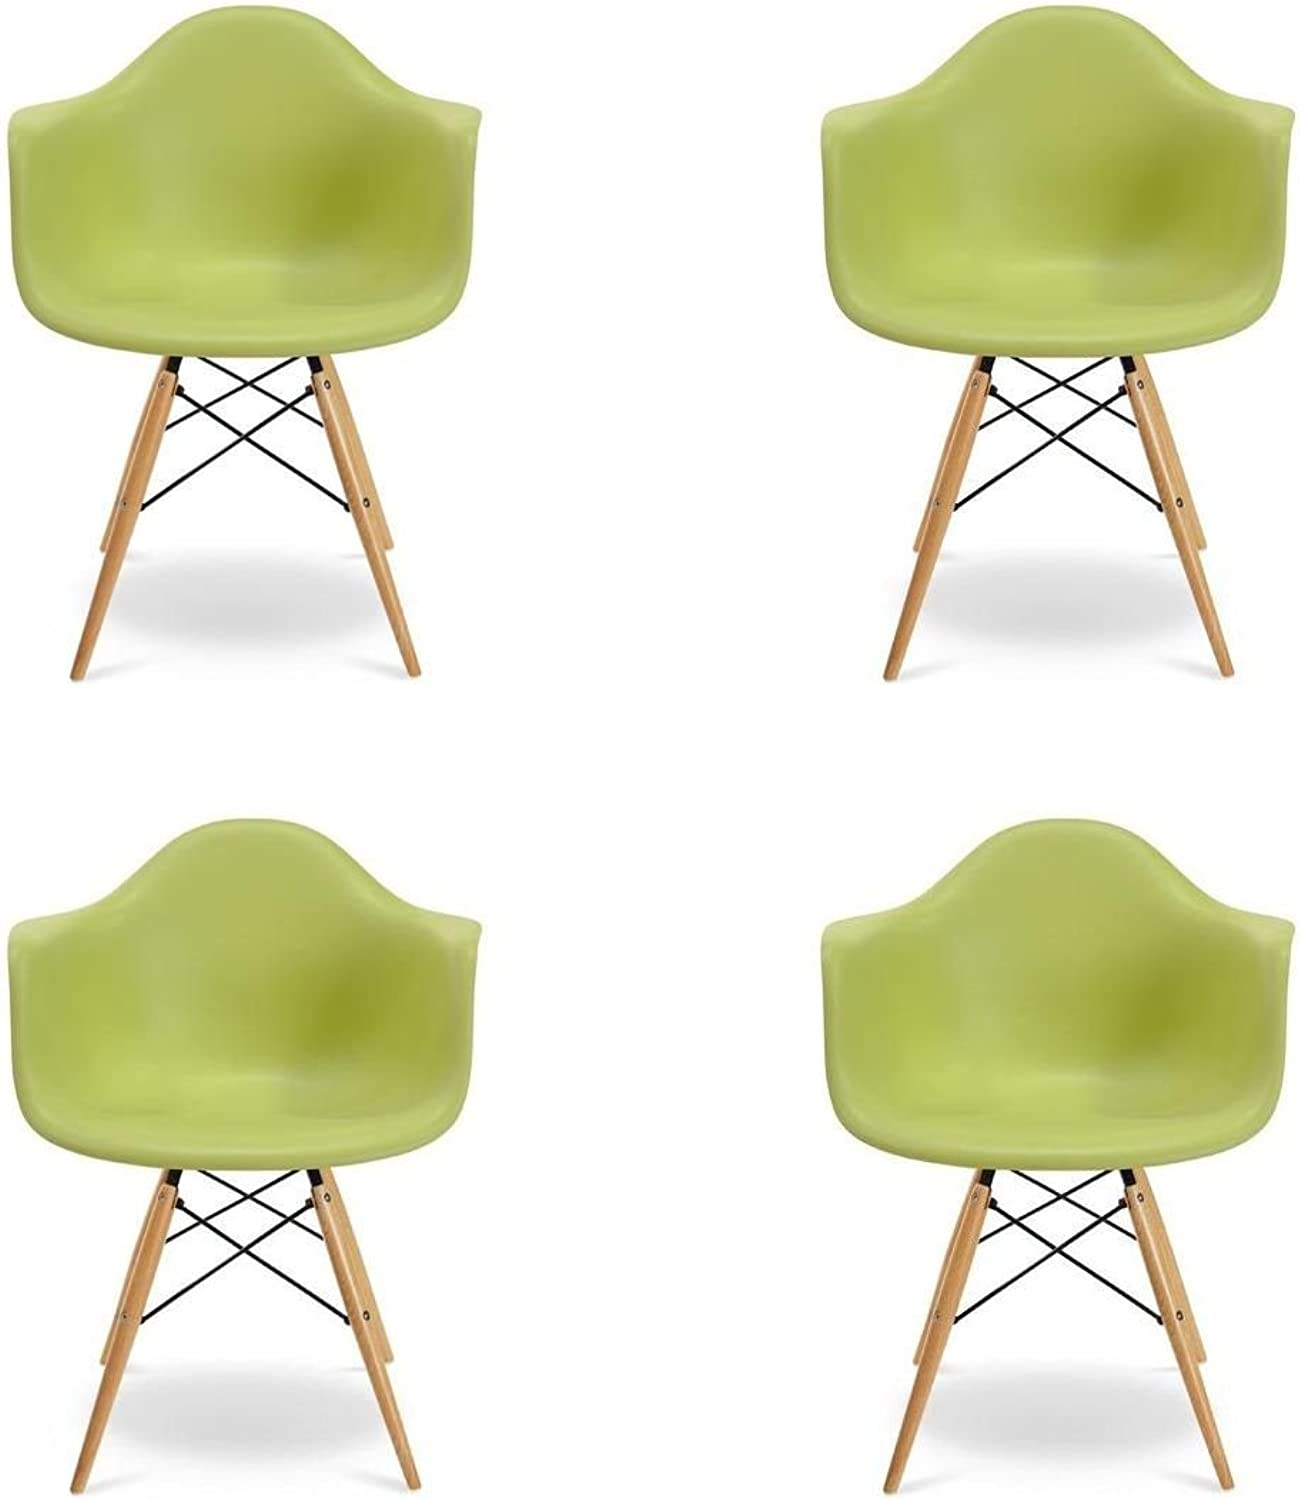 Meubles House S4-PC-0119-G Mid-Century Modern Eiffel Style Kids Bucket Chair with Chrome Legs (Set of Four), Green